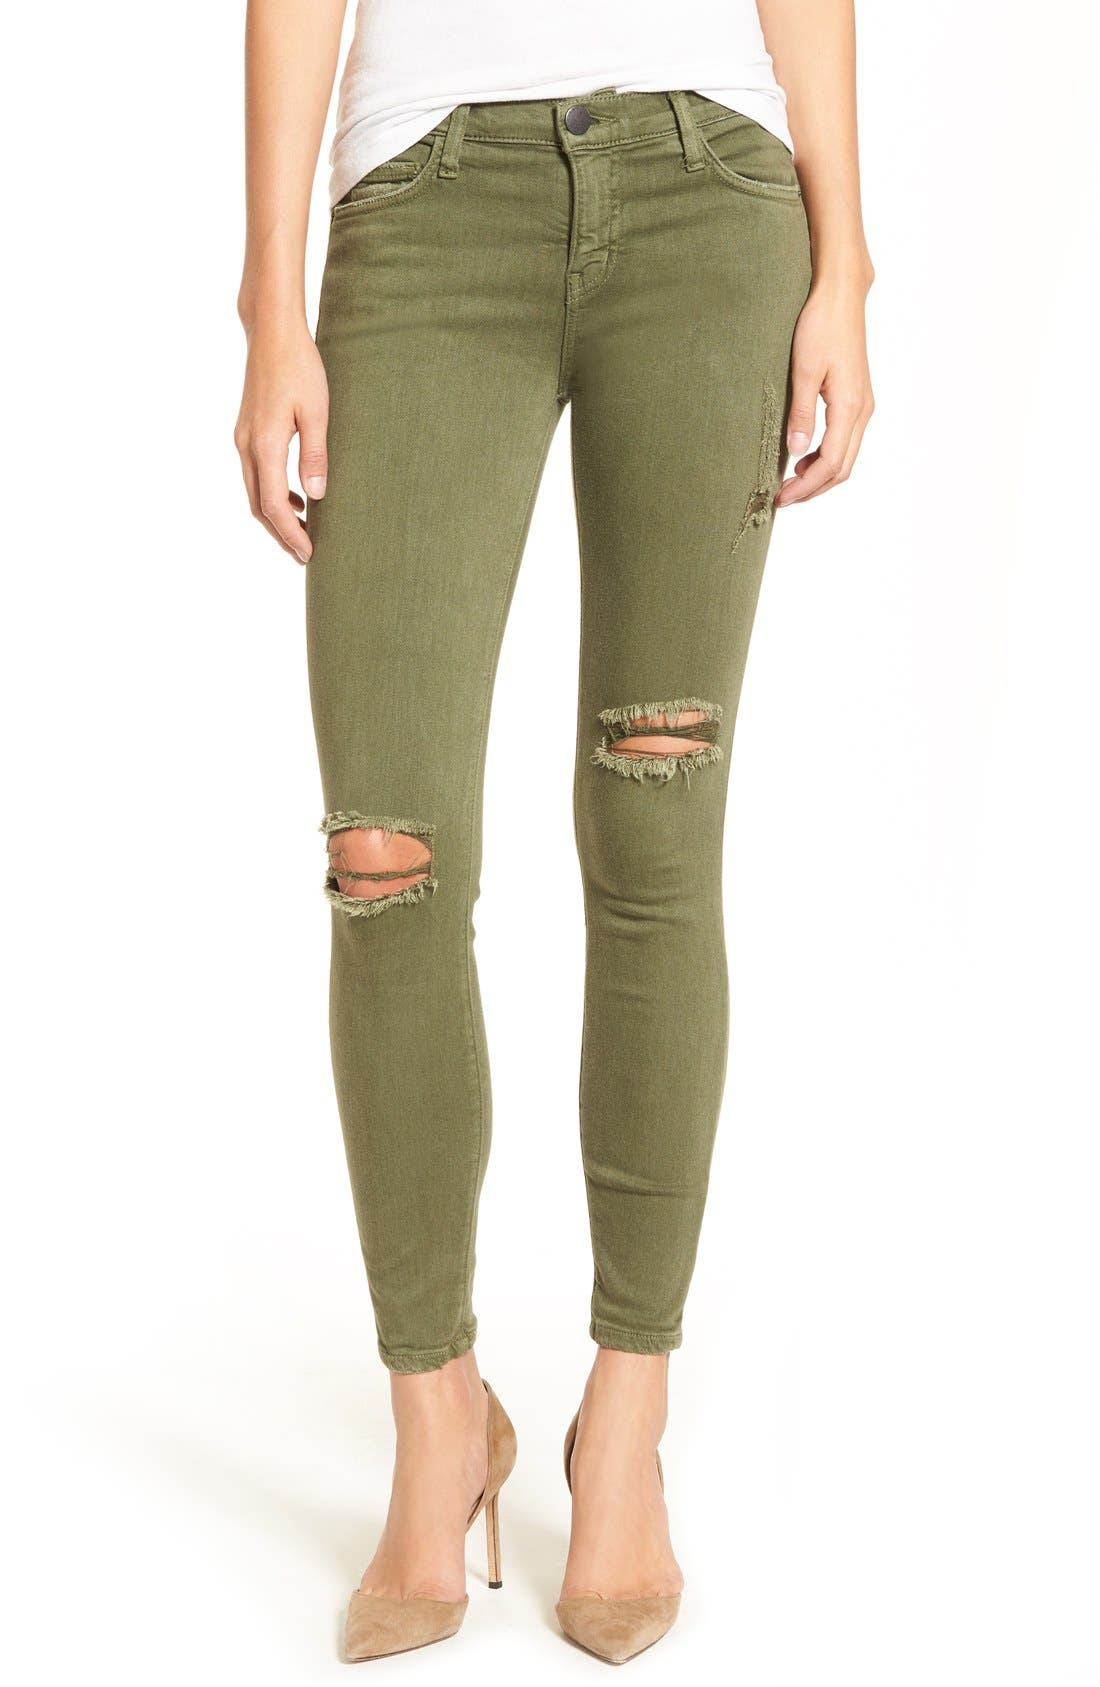 Alternate Image 1 Selected - Current/Elliott 'The Stiletto' Crop Skinny Jeans